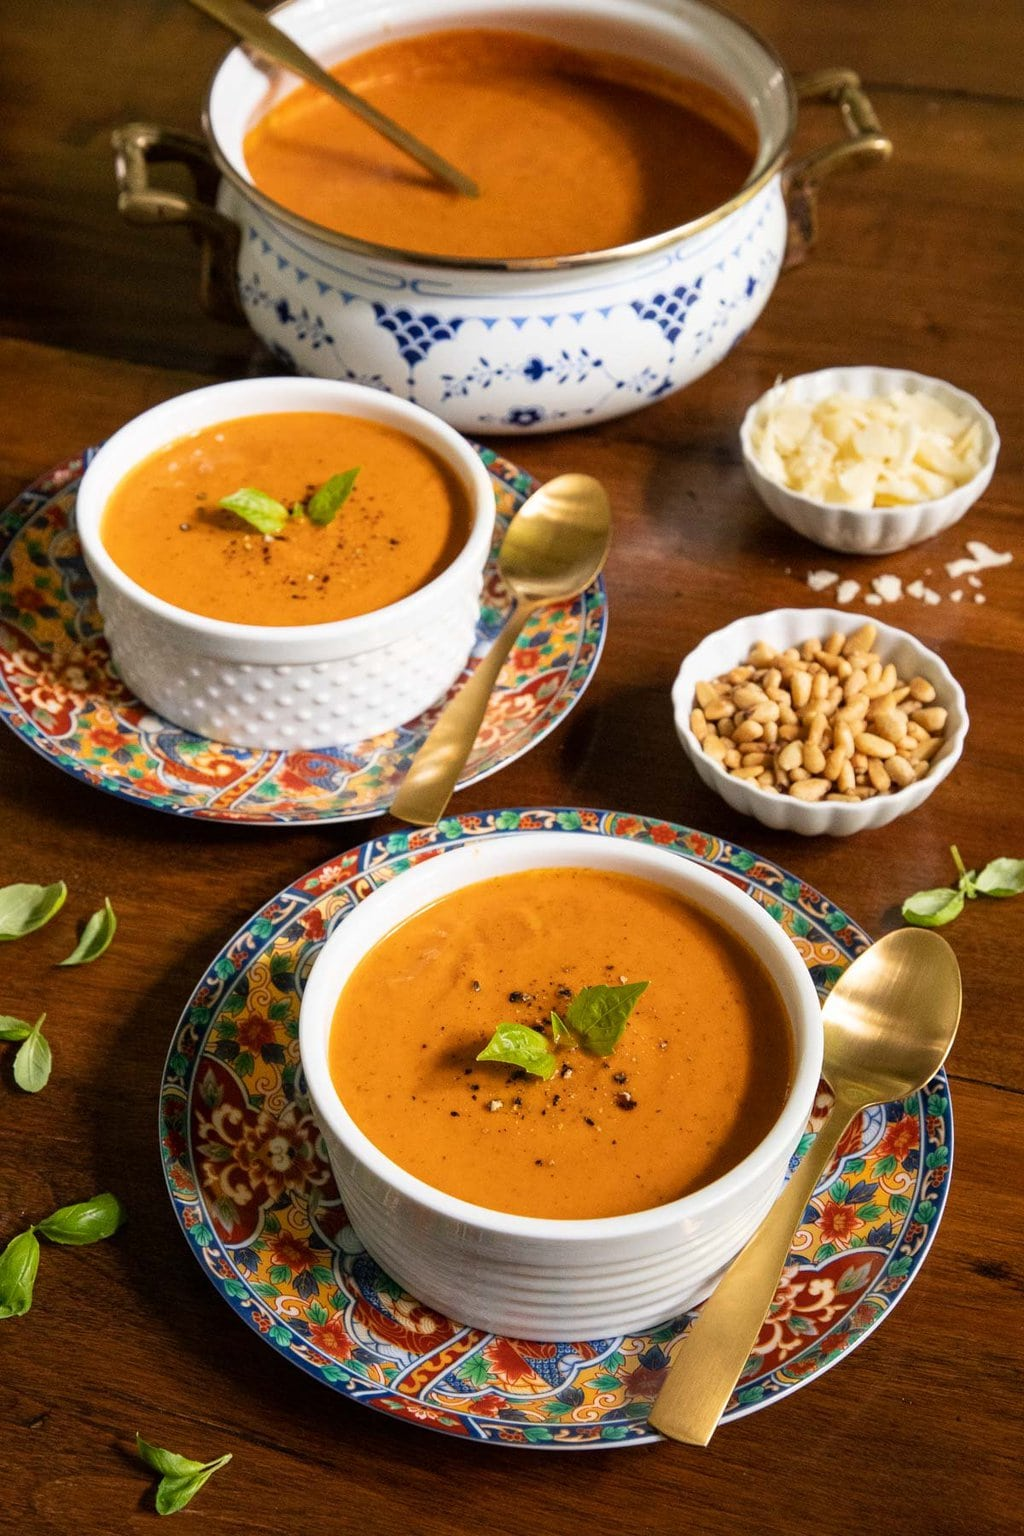 Vertical photo of bowls and a pot of Fire-Roasted Tomato Basil Soup on a wood table with small bowls of grated cheese and roasted pine nuts.